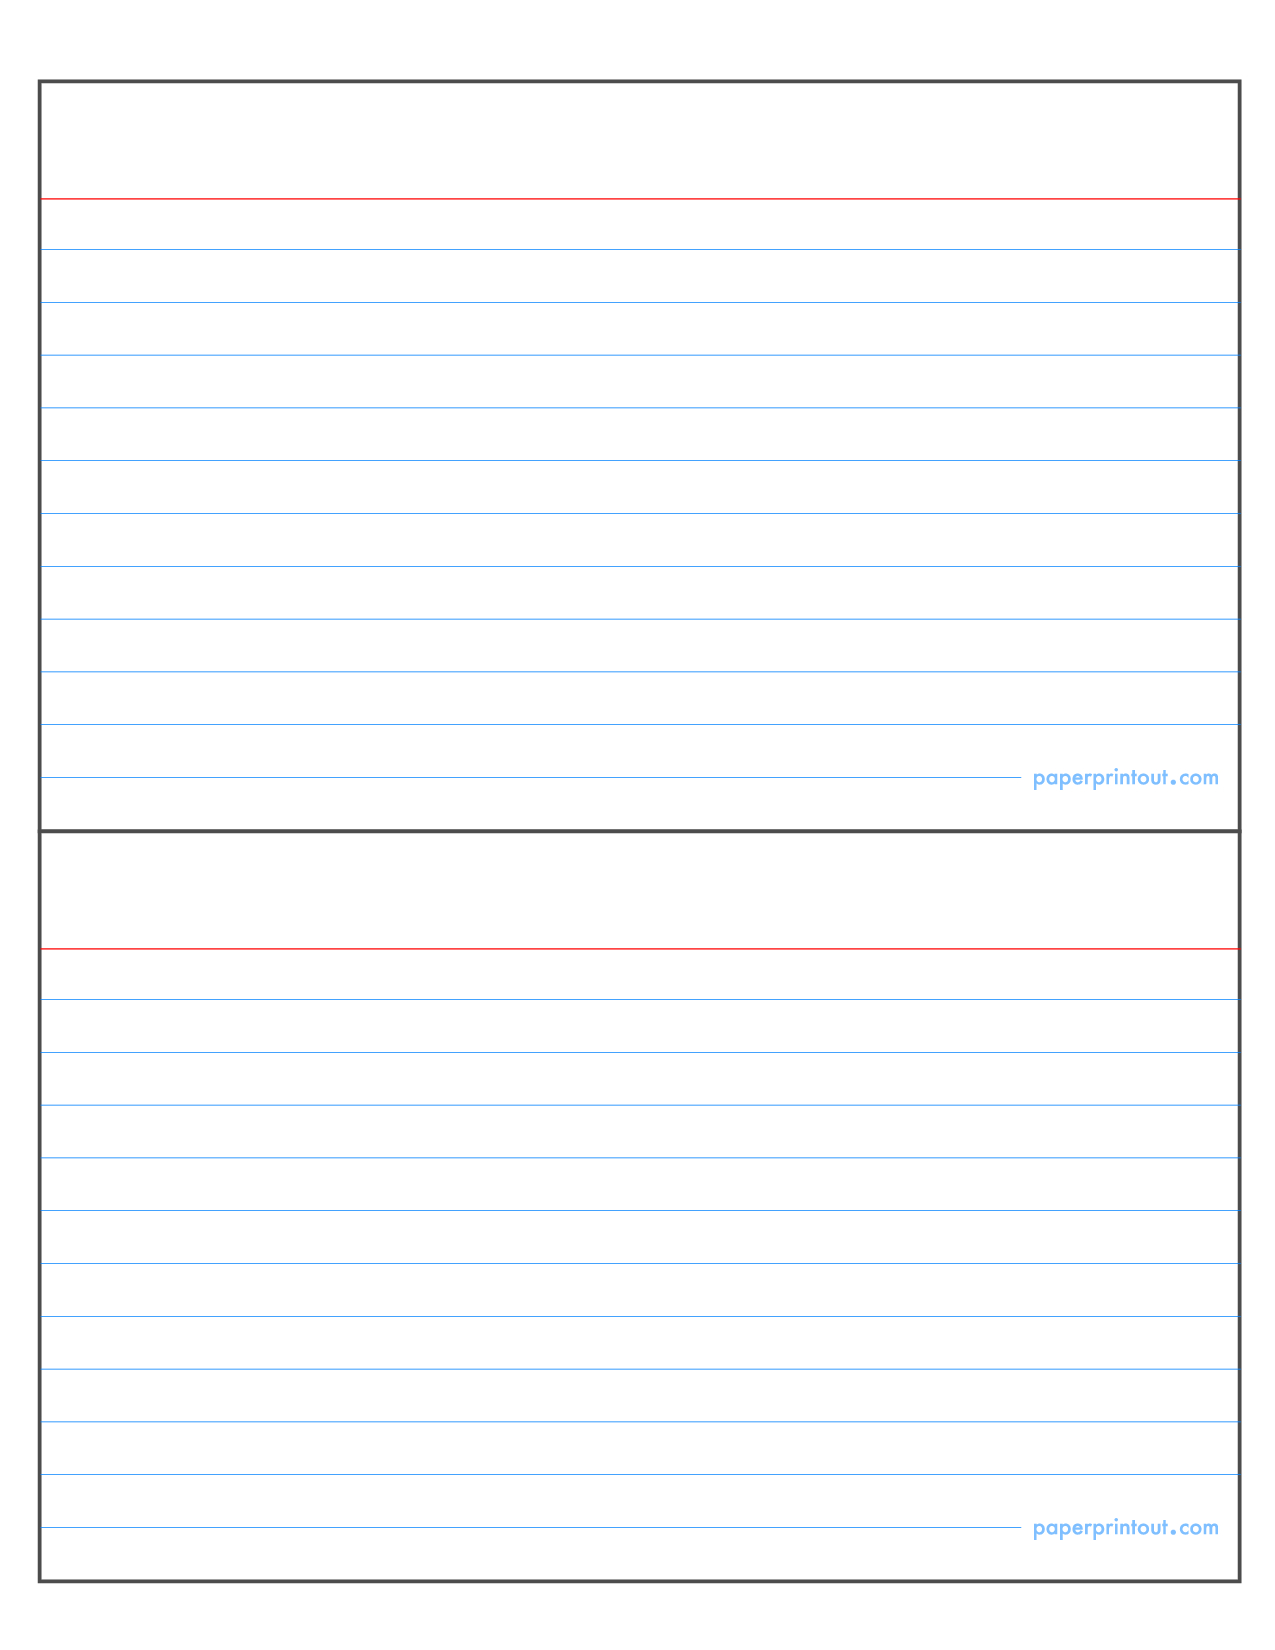 Index Card Template | E Commercewordpress In Index Card Template For Word